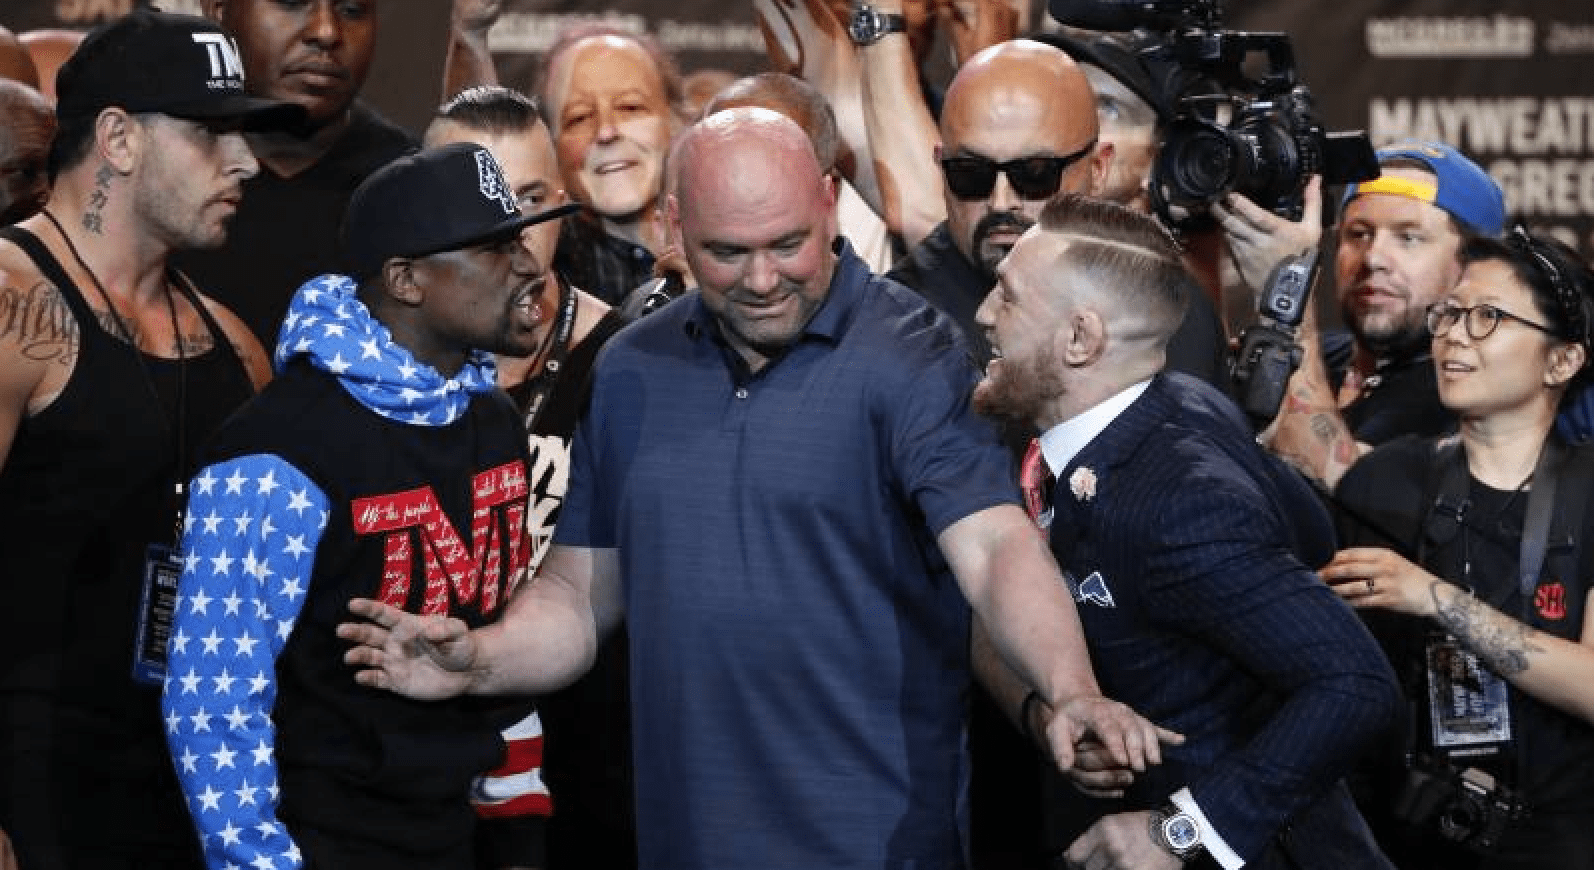 Floyd Mayweather: Conor McGregor, I'll Whip Your Ass Again